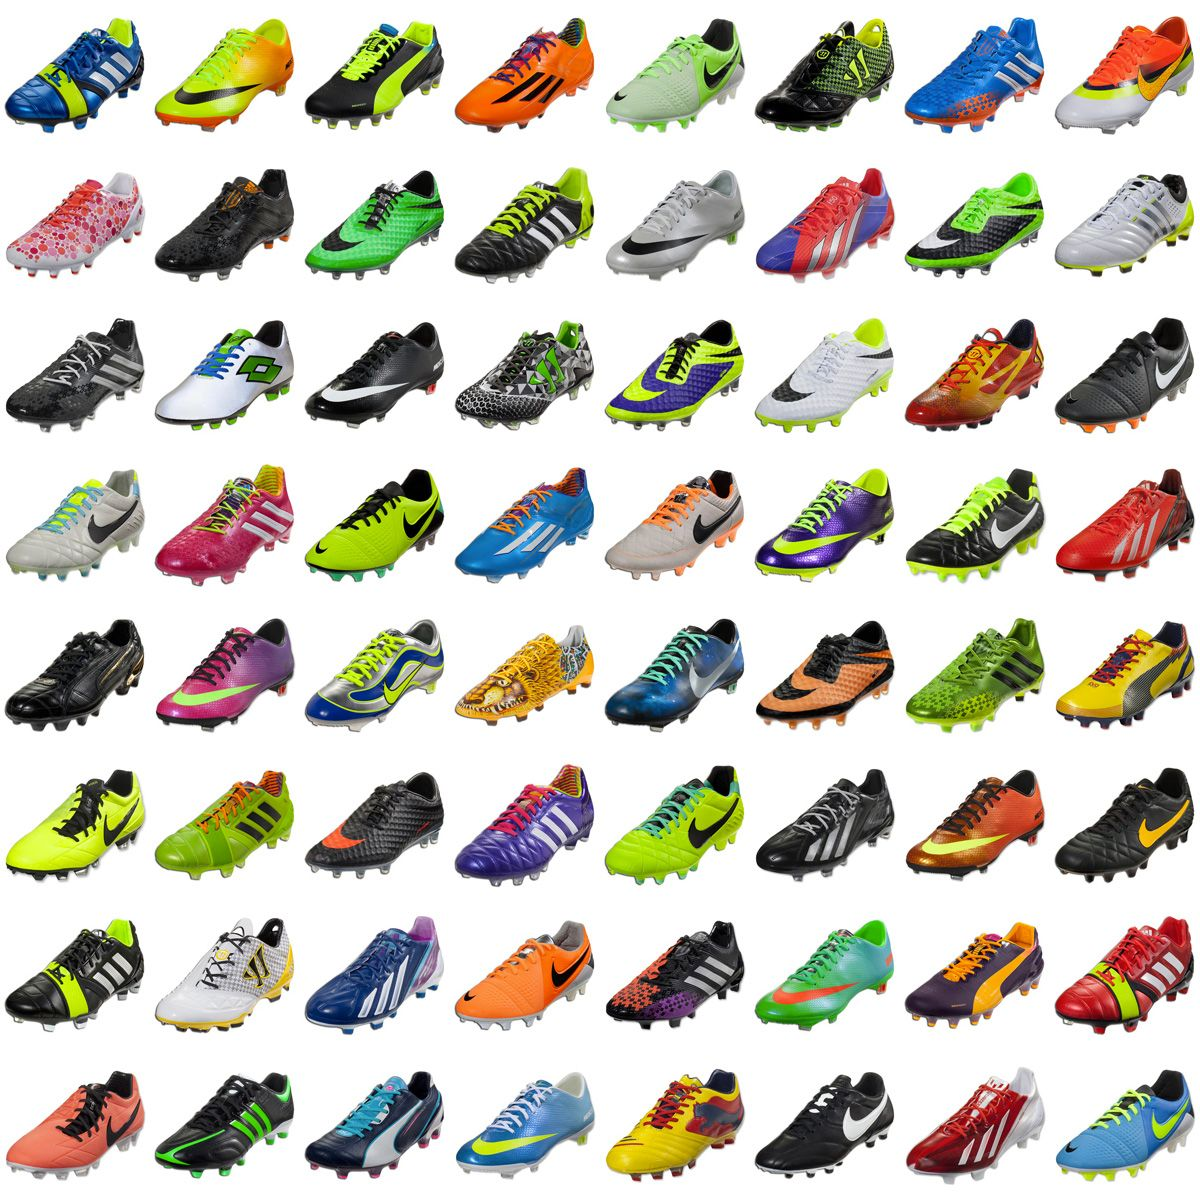 Most Popularsoccercleats Of Some 2013Which Was Your The 9WEDHIY2